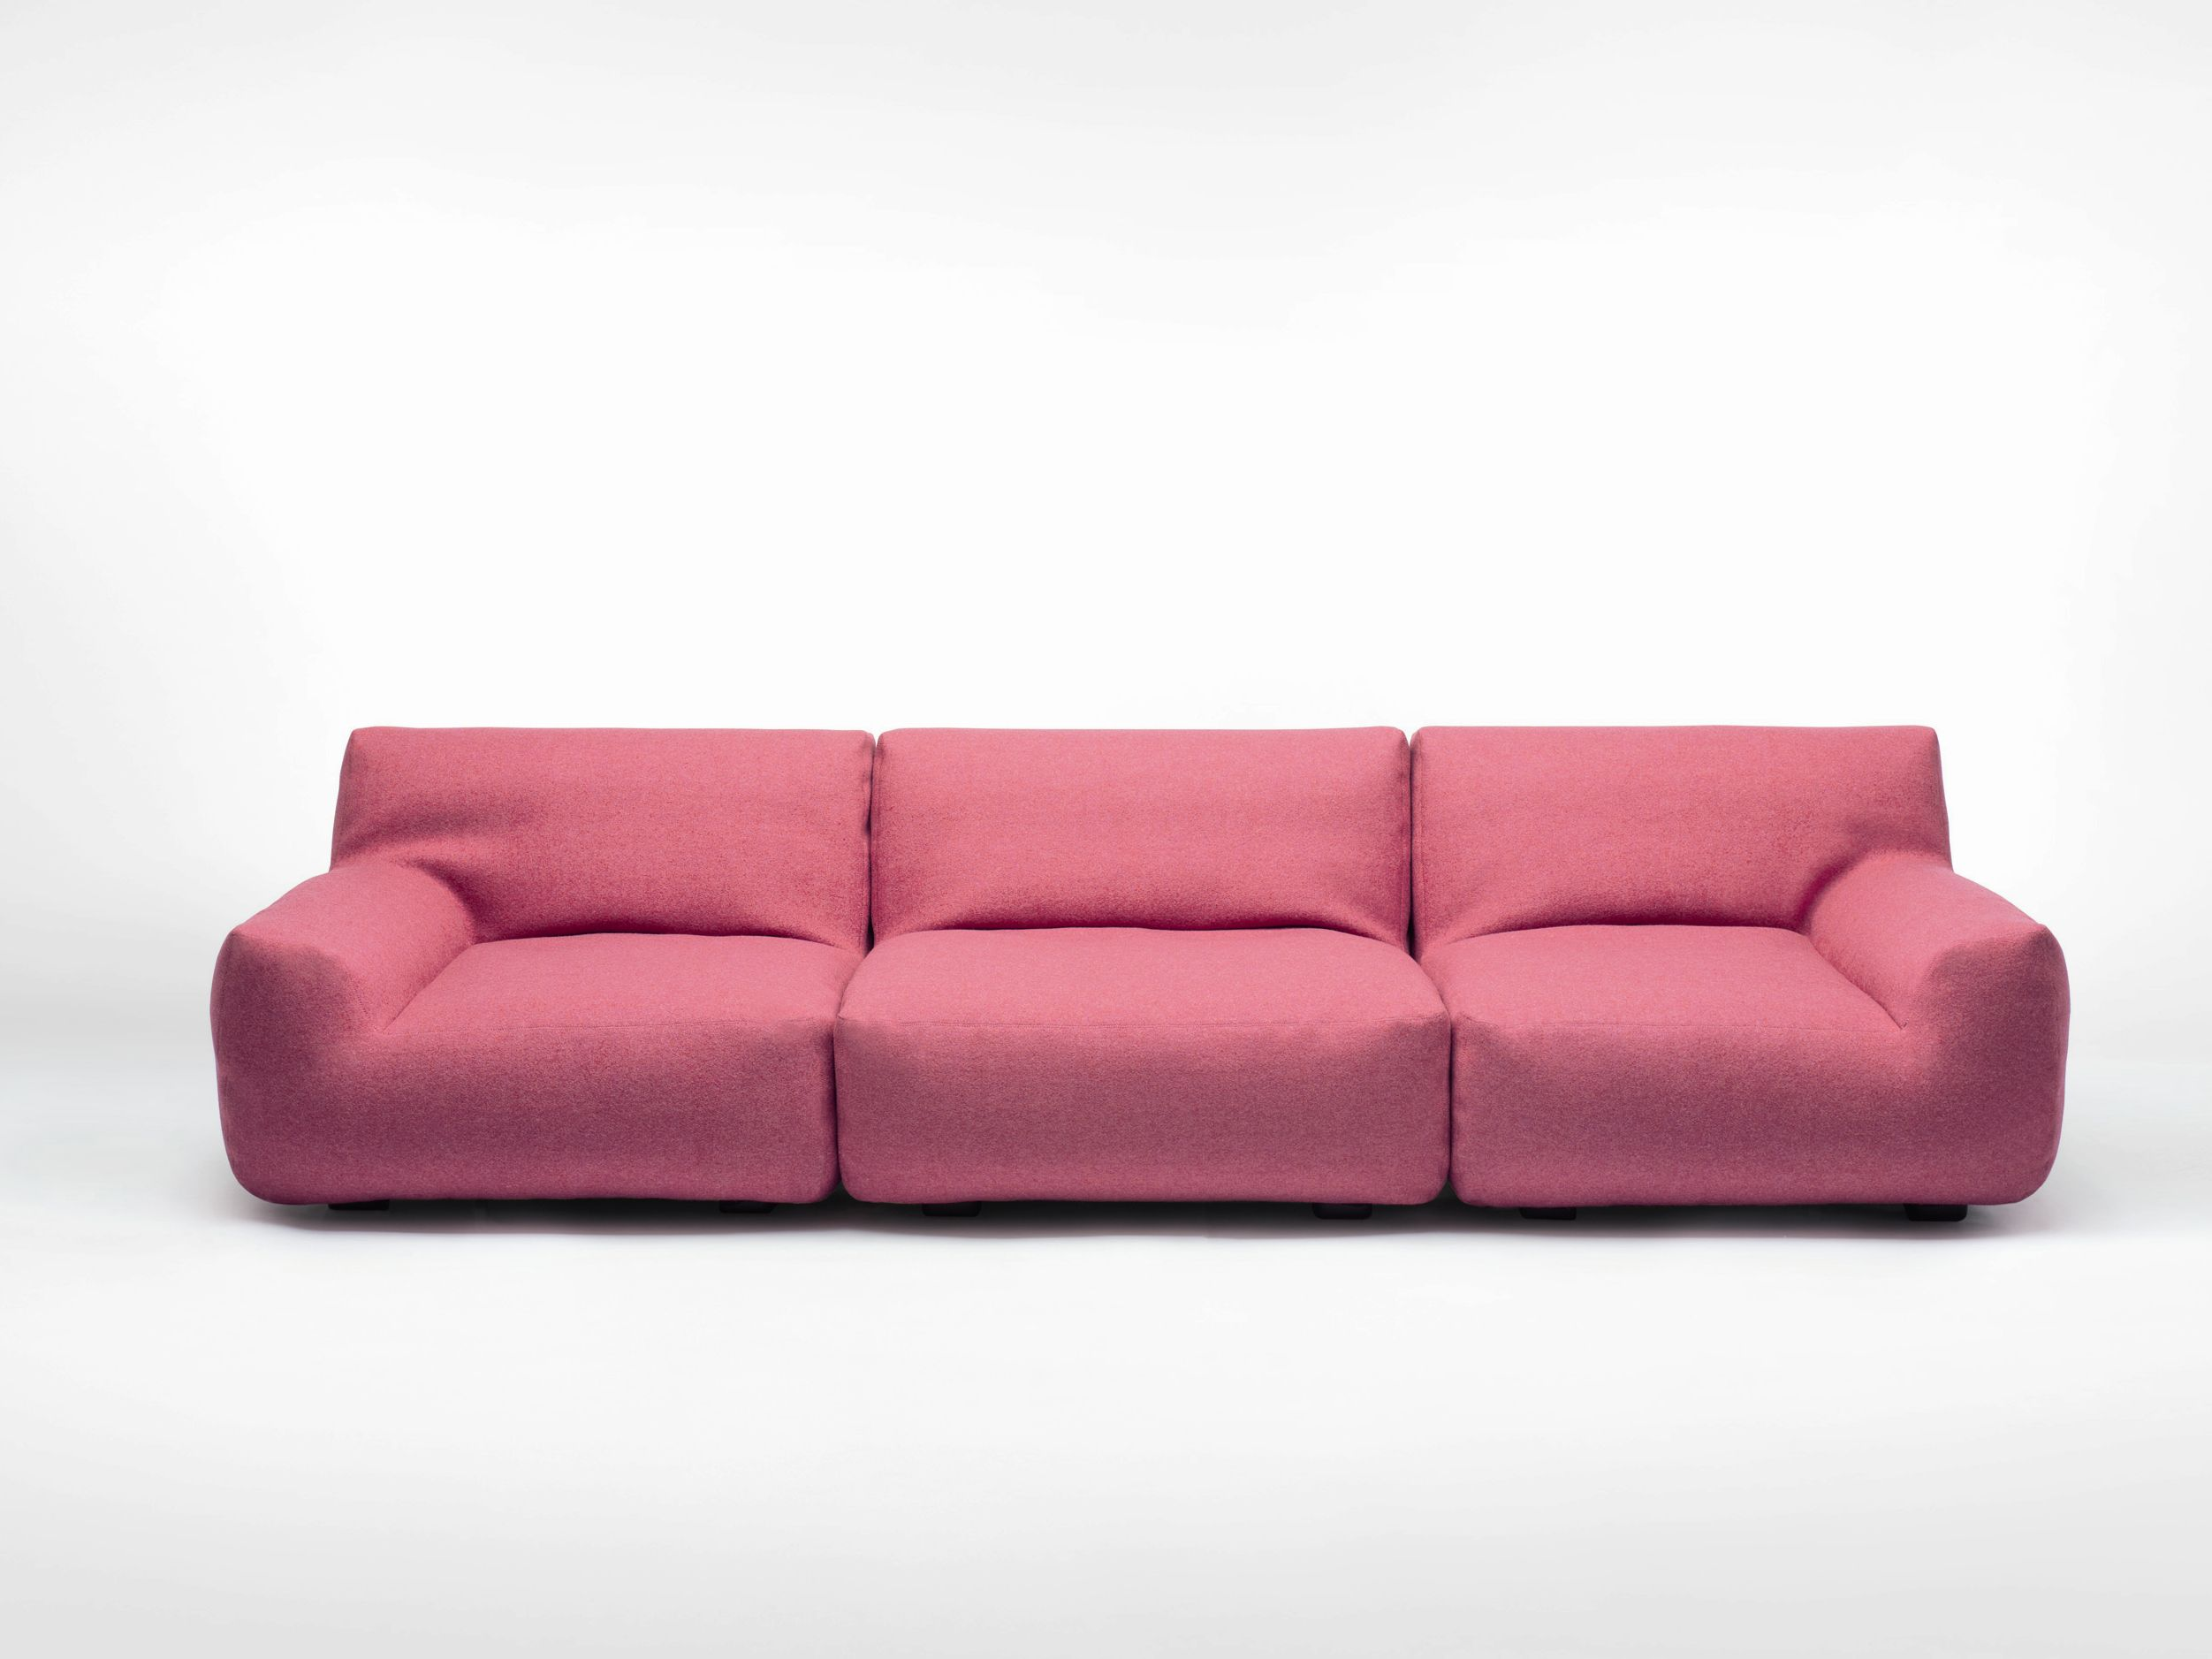 Sectional Sofa With Removable Cover Welcome Aqua